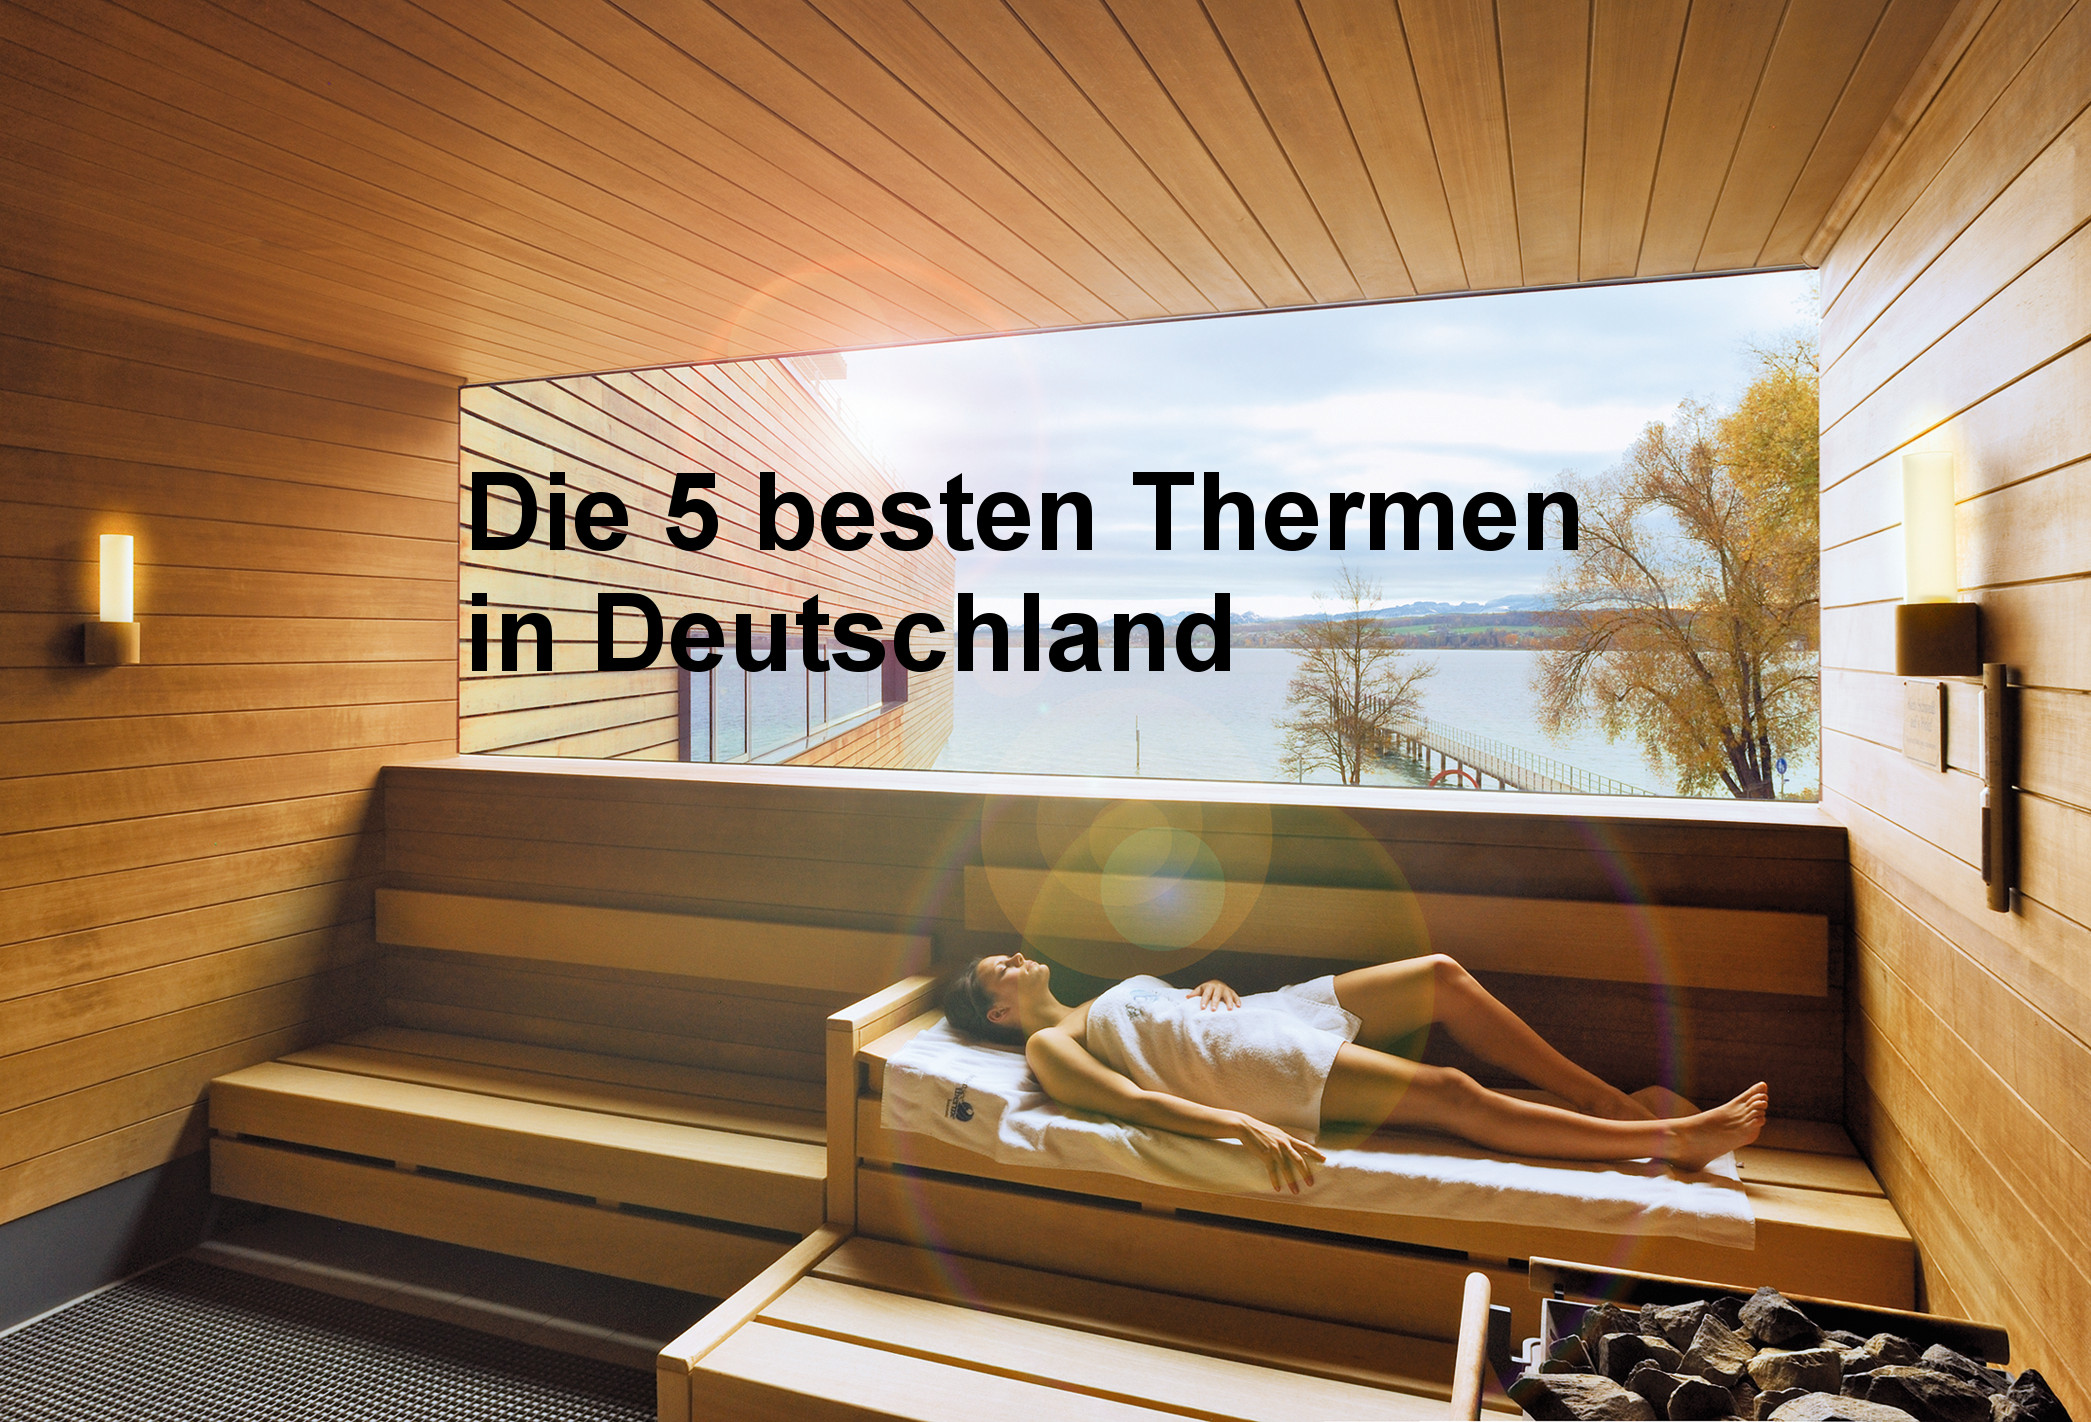 die 5 besten thermen in deutschland entspannung pur. Black Bedroom Furniture Sets. Home Design Ideas